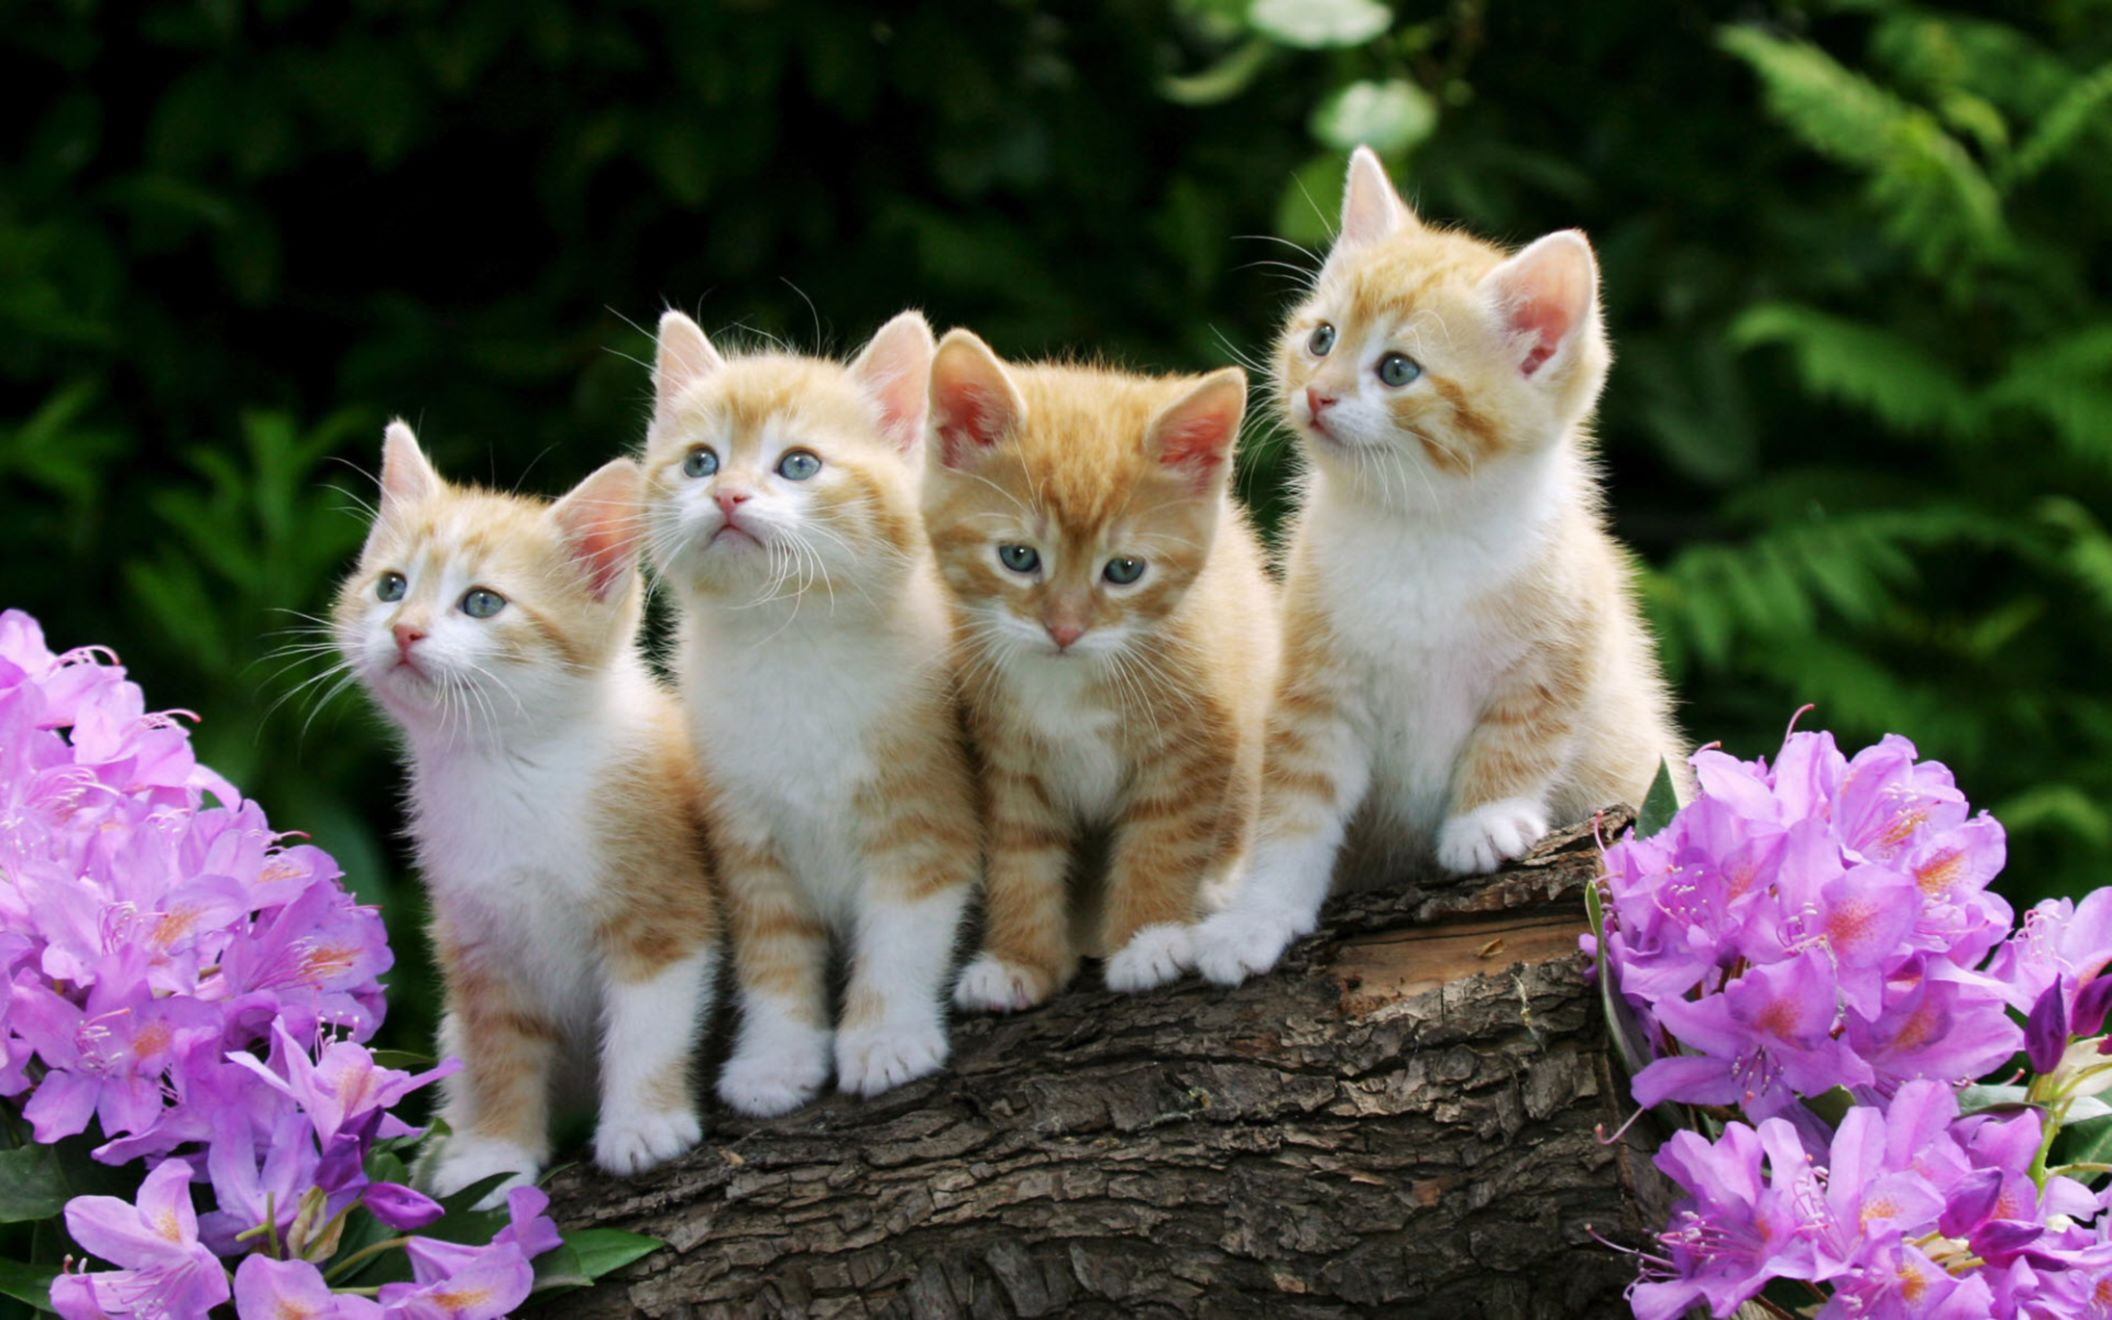 Download free HD Cute Cats Animal Desktop Wallpaper, image